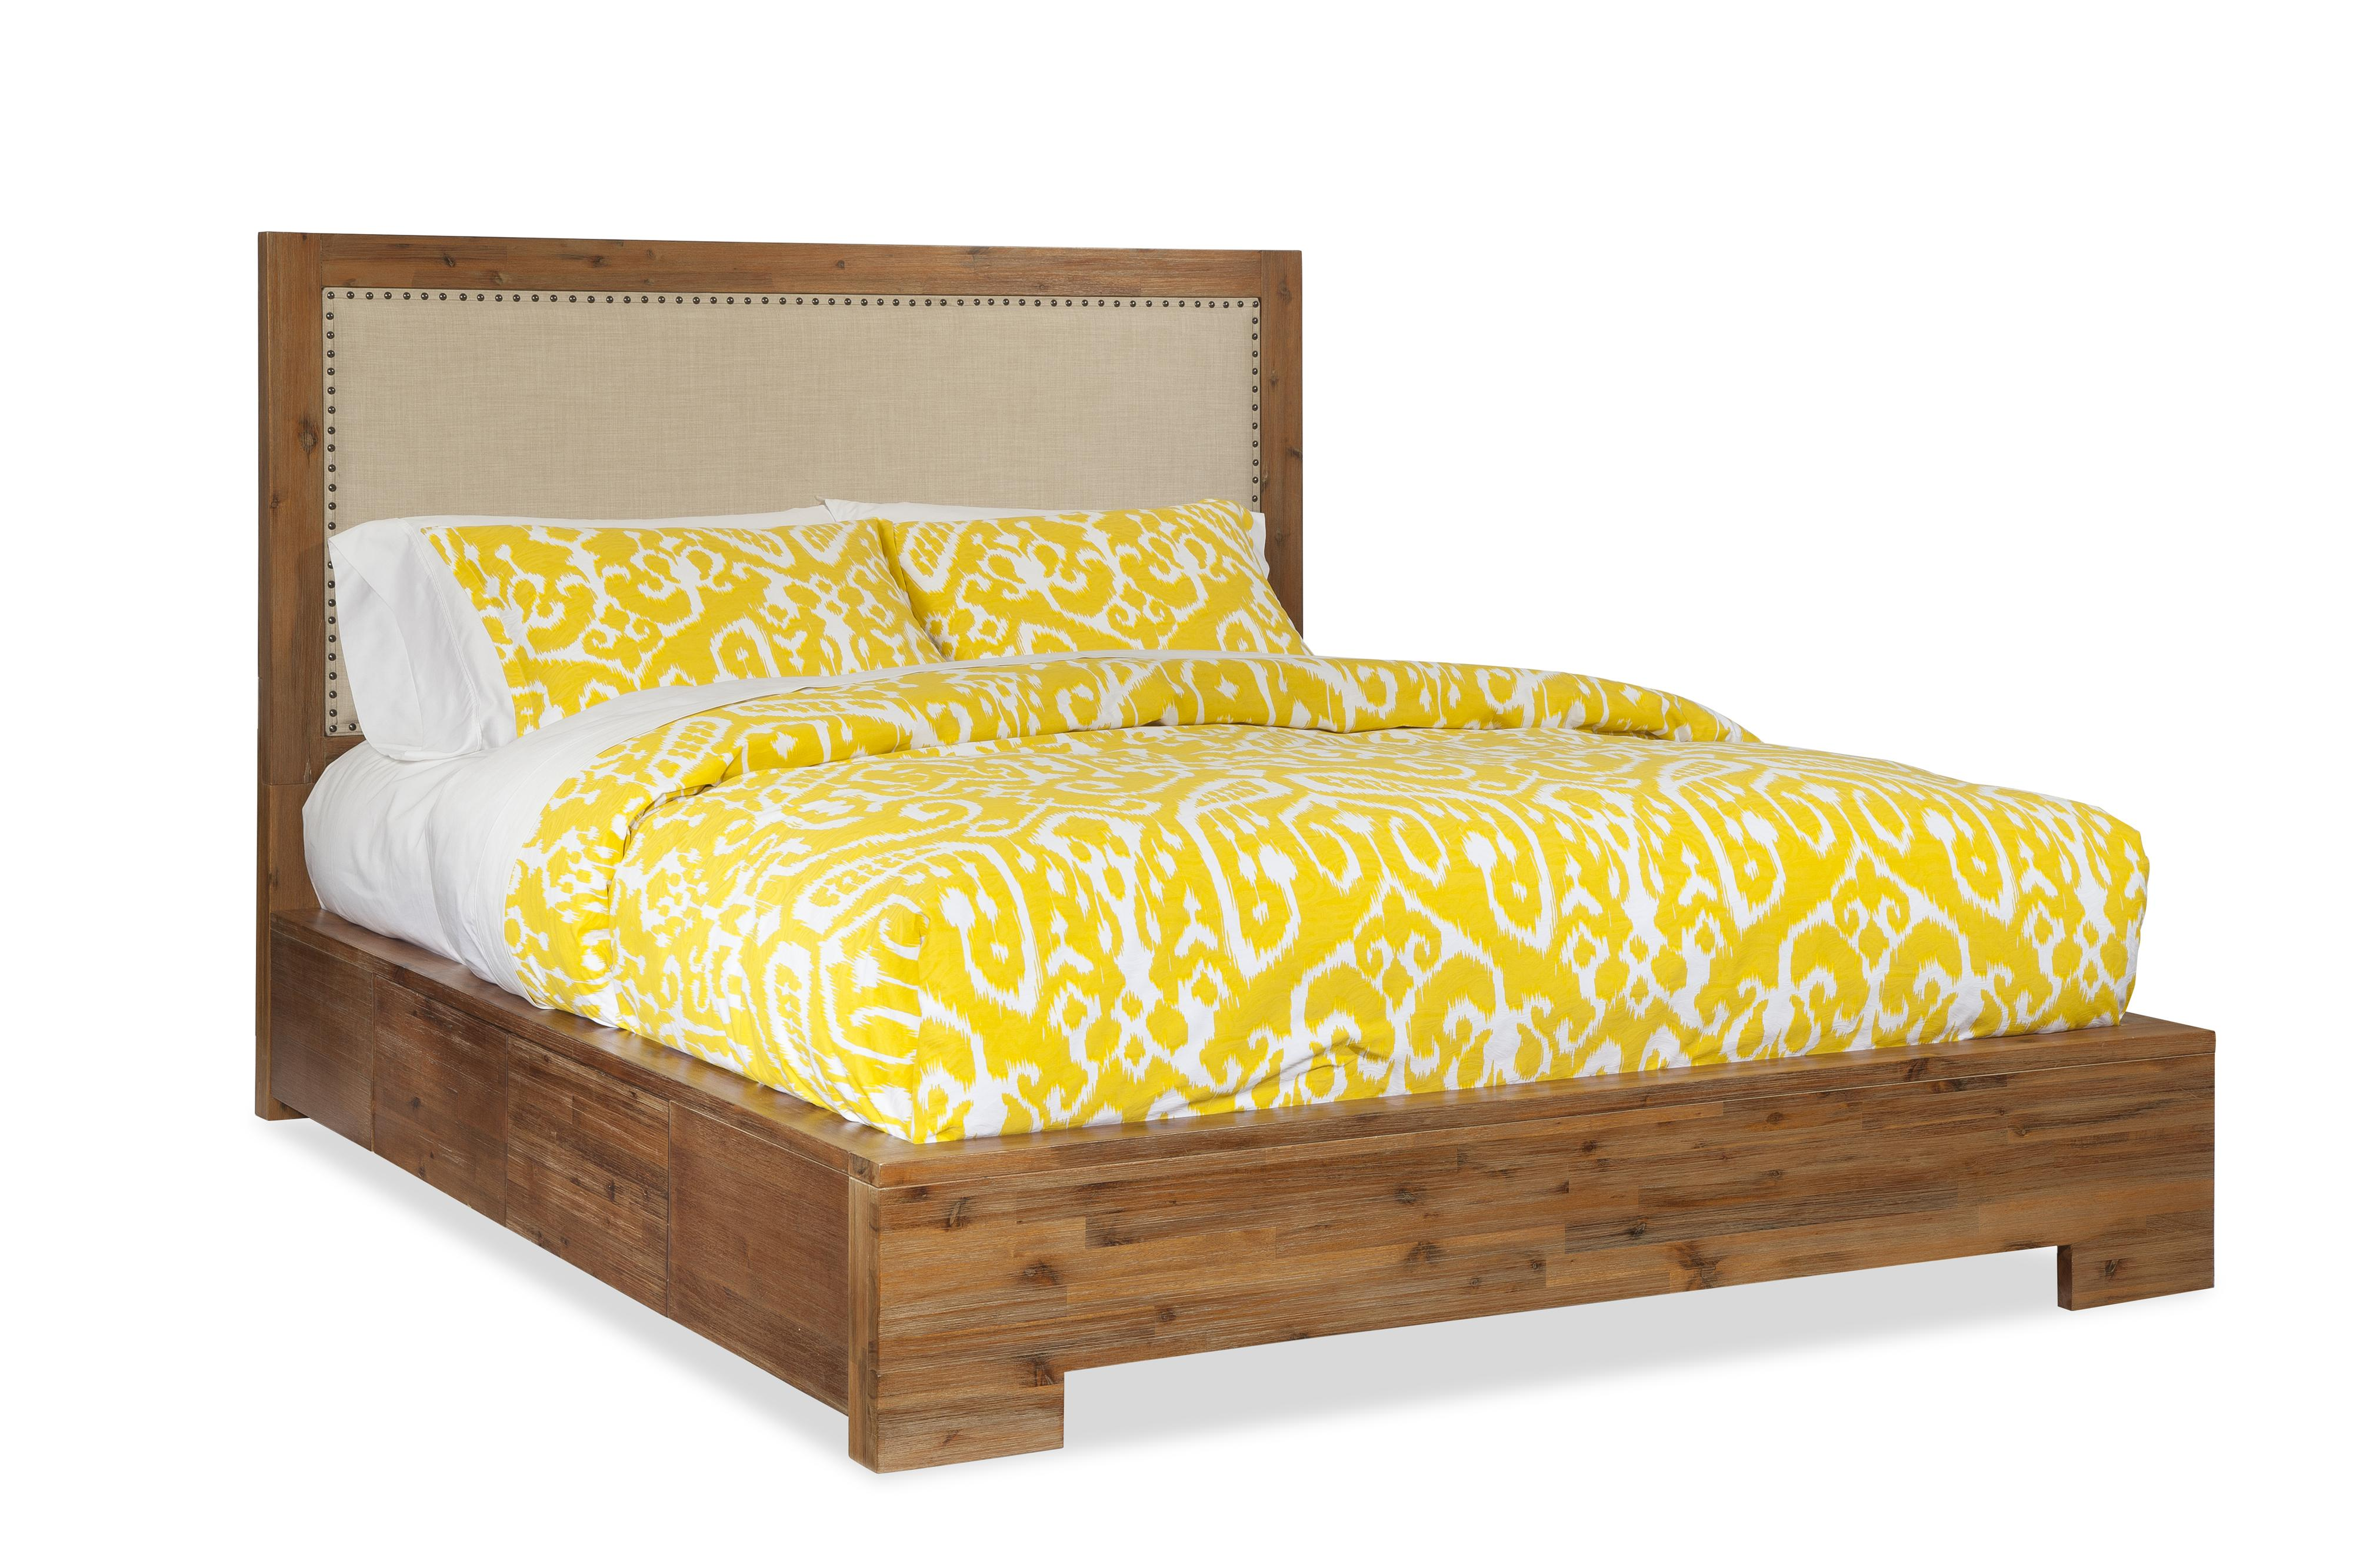 Cresent Fine Furniture Waverly Queen Upholstered Storage Bed - Item Number: 5533QB+2x5531QRS+QSL